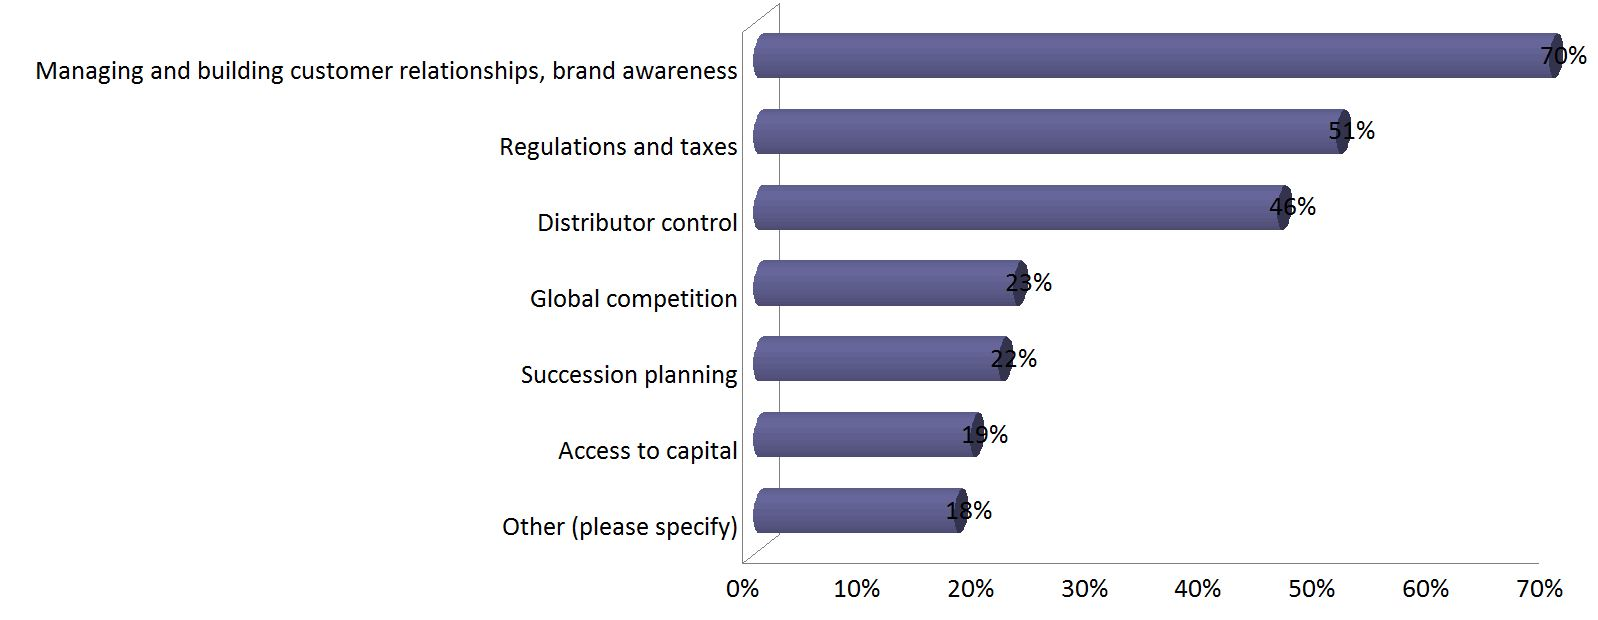 what business skills are needed to prosper in the u s wine regulations and taxes were also cited as a continuing challenge by 51 percent of the respondents followed by distributor control at 46 percent